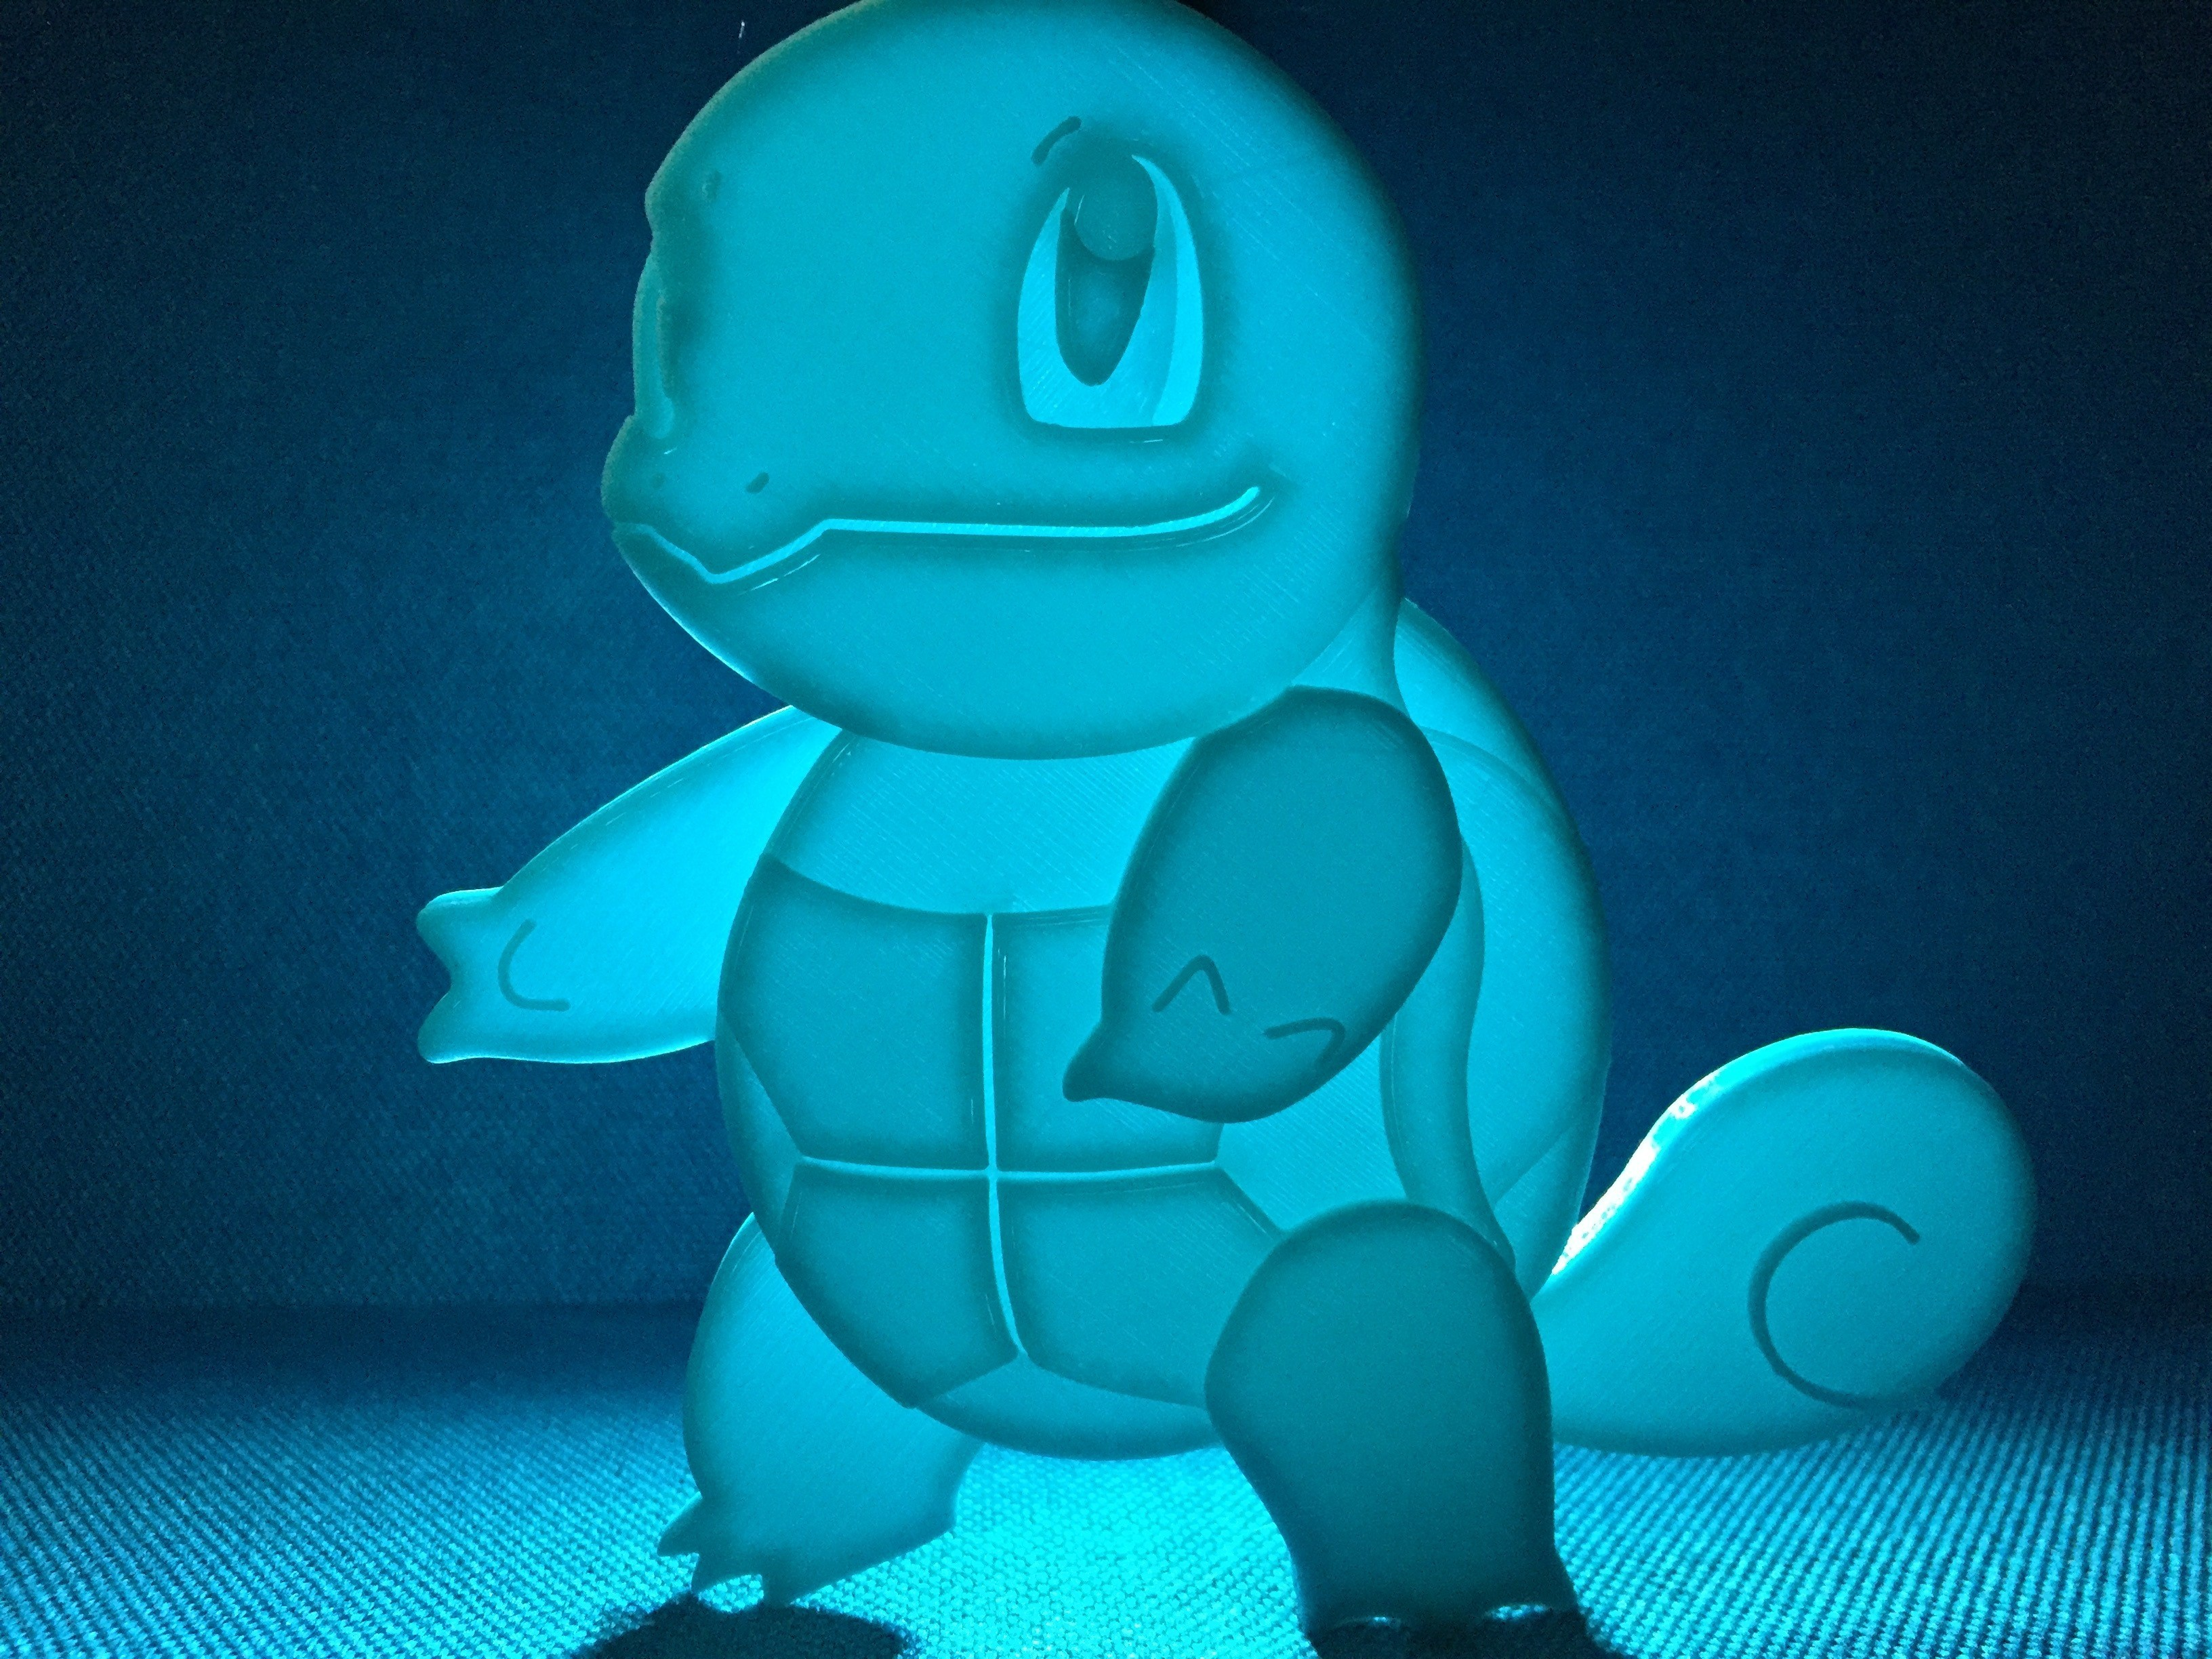 IMG_6953.jpg Download free STL file Squirtle • 3D printing object, upperpeninsulaplastics